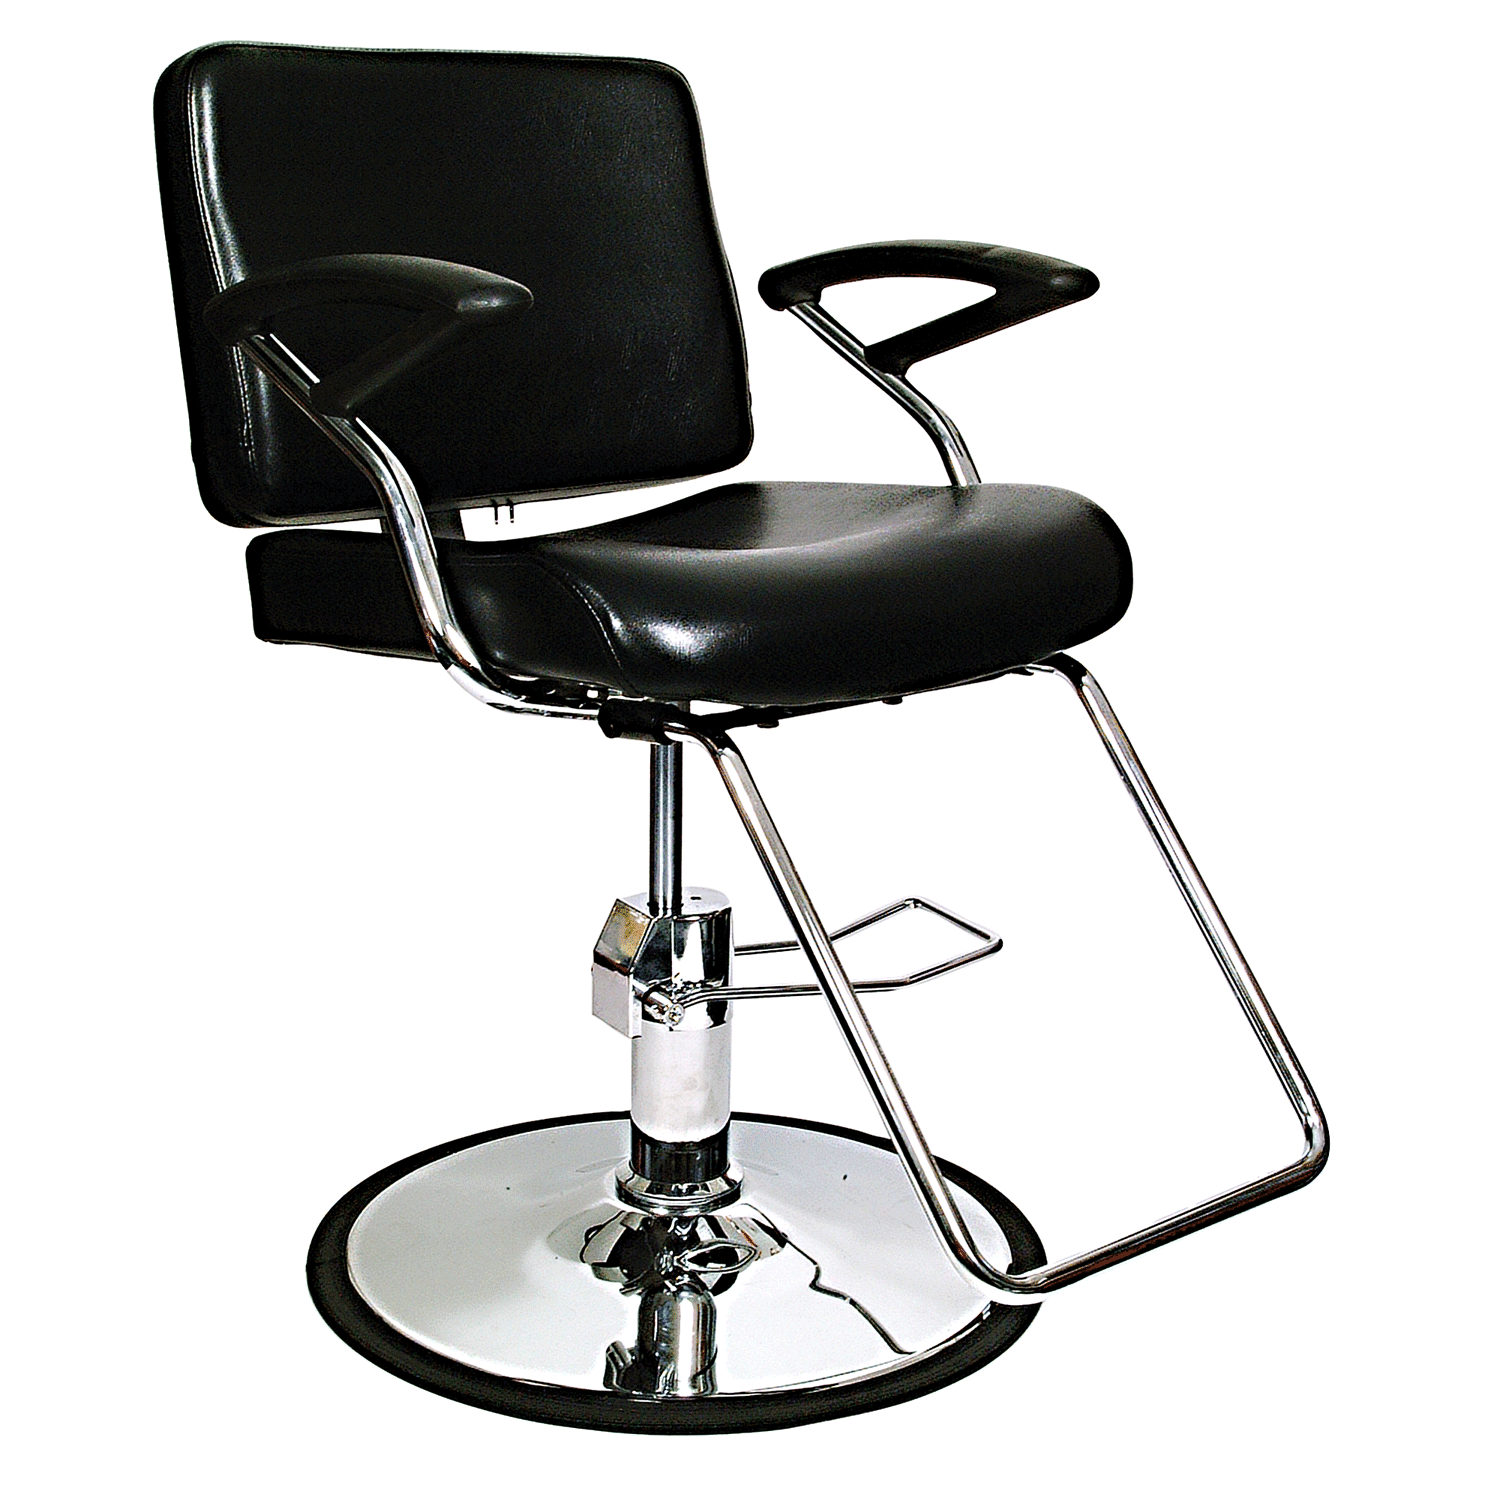 Phenomenal Ella Styling Chair With Base At Cosmoprof Equipment Alphanode Cool Chair Designs And Ideas Alphanodeonline